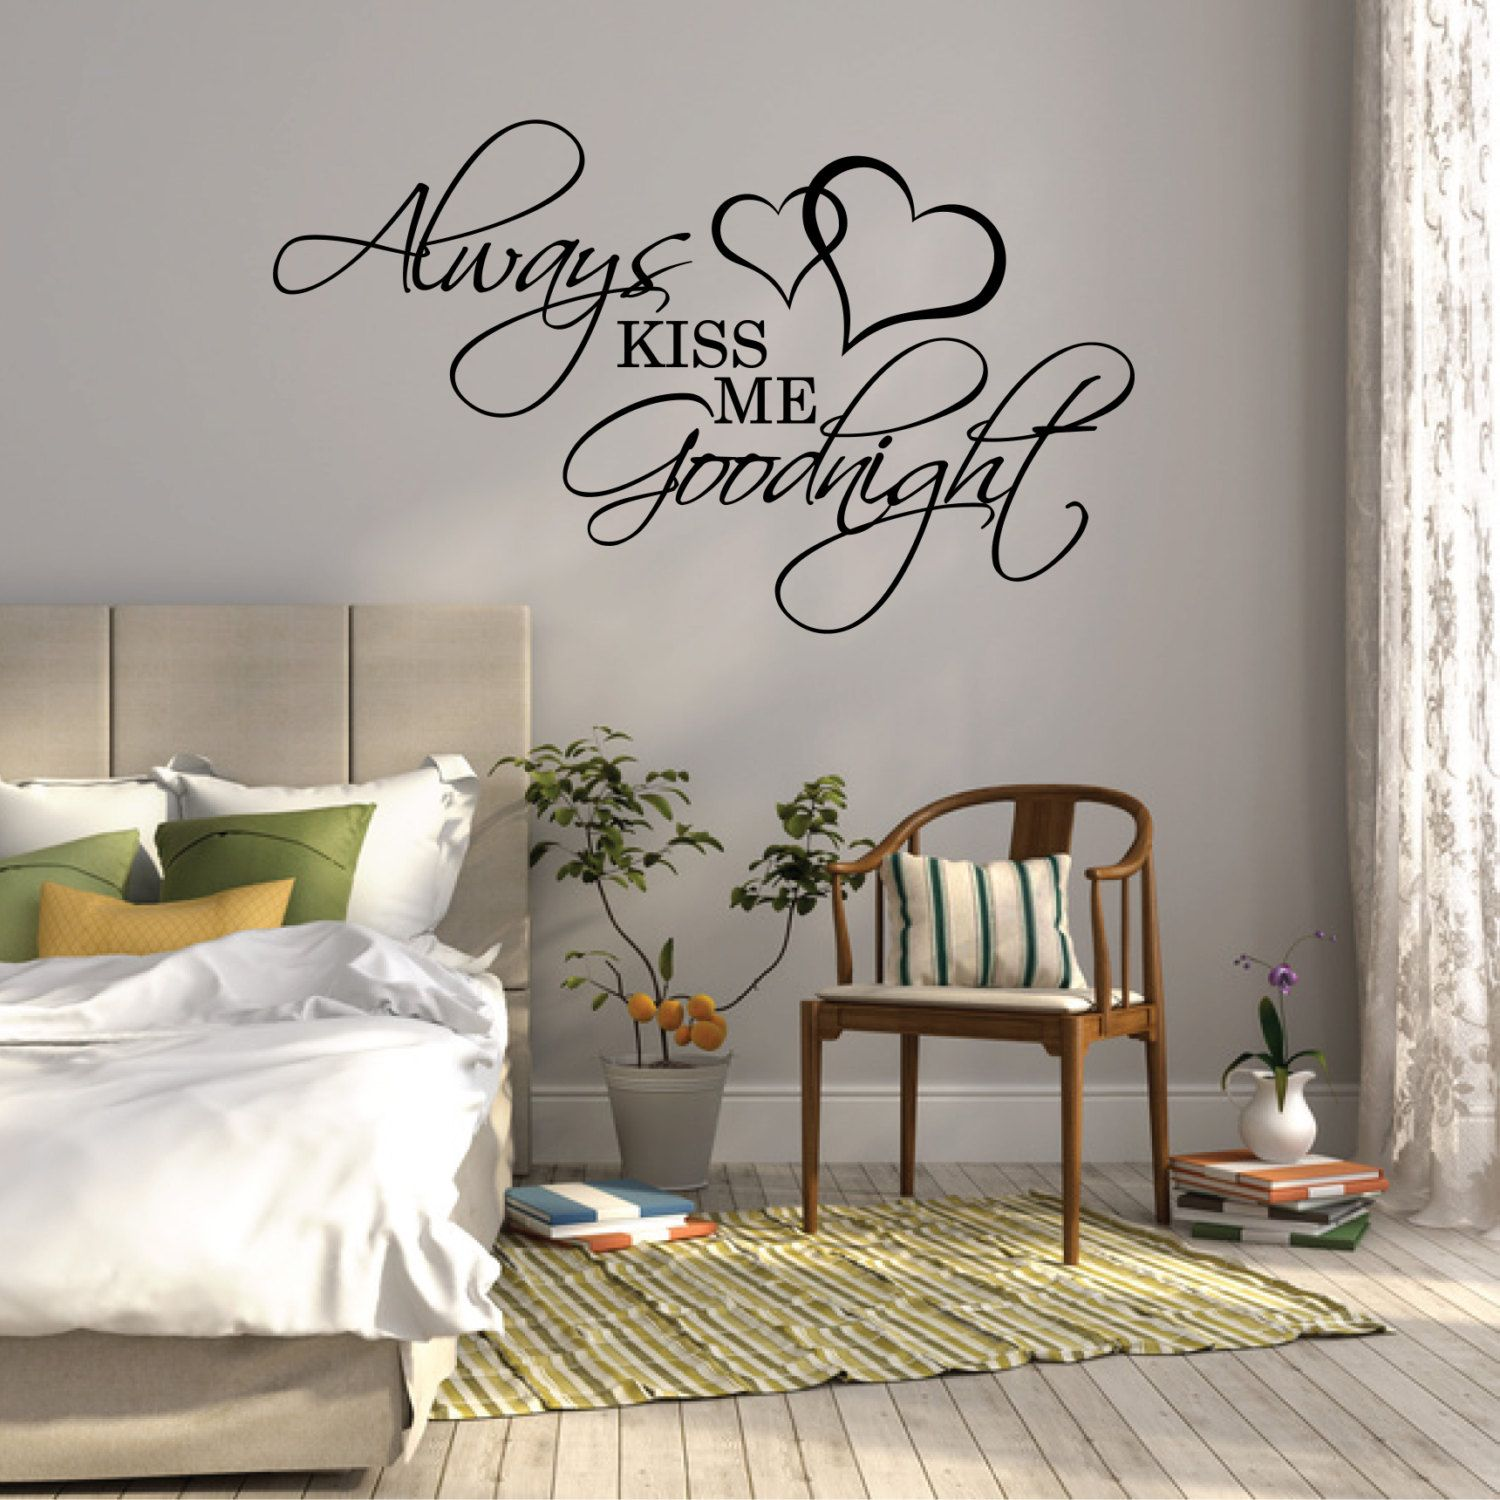 Wall sticker quote always kiss me goodnight over bed wall decor bedroom wall decal above Master bedroom art above bed